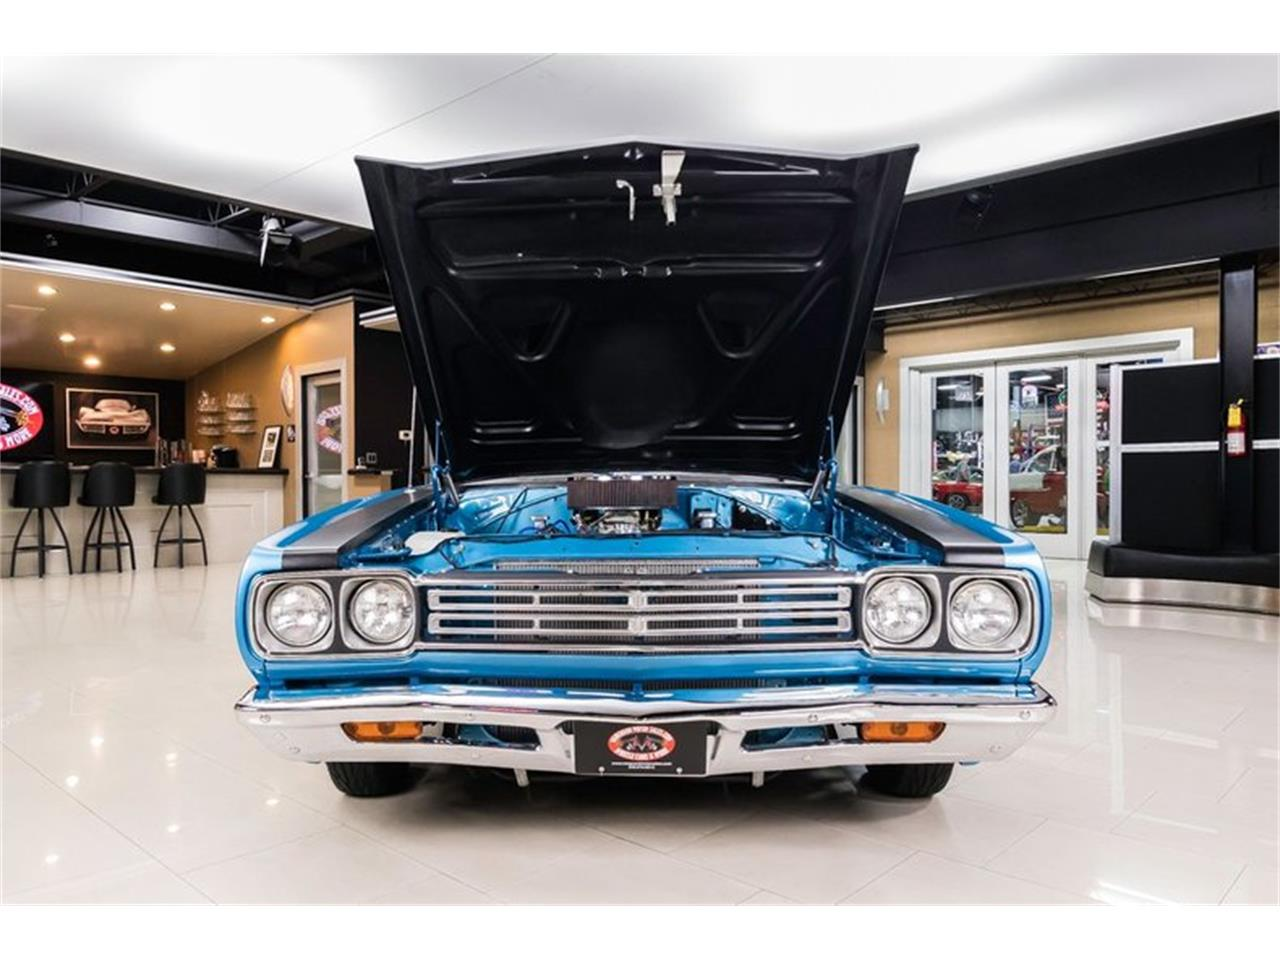 Large Picture of 1969 Road Runner located in Michigan - $89,900.00 Offered by Vanguard Motor Sales - QQ5A